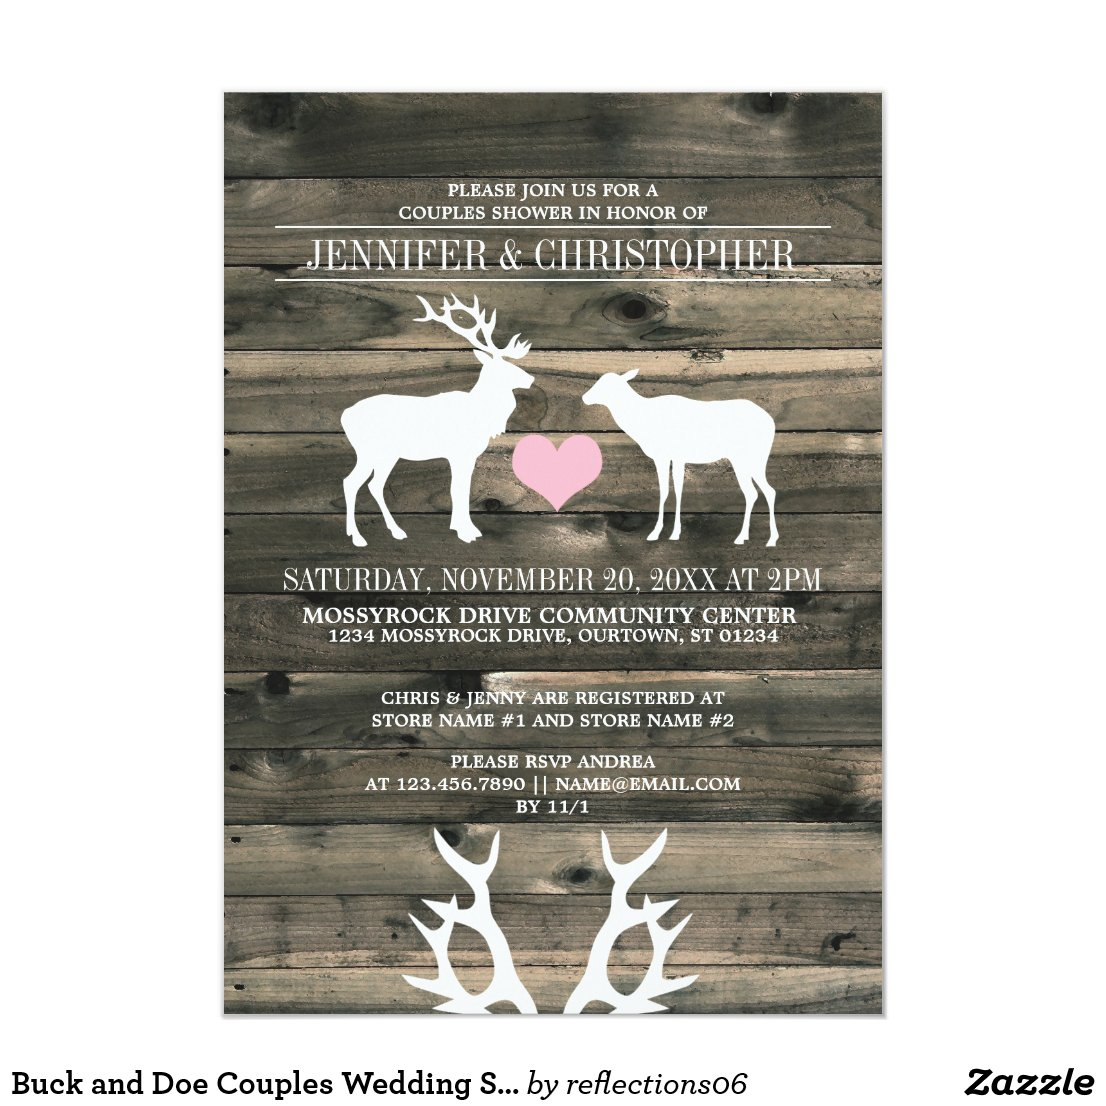 Buck and Doe Couples Wedding Shower Invitation